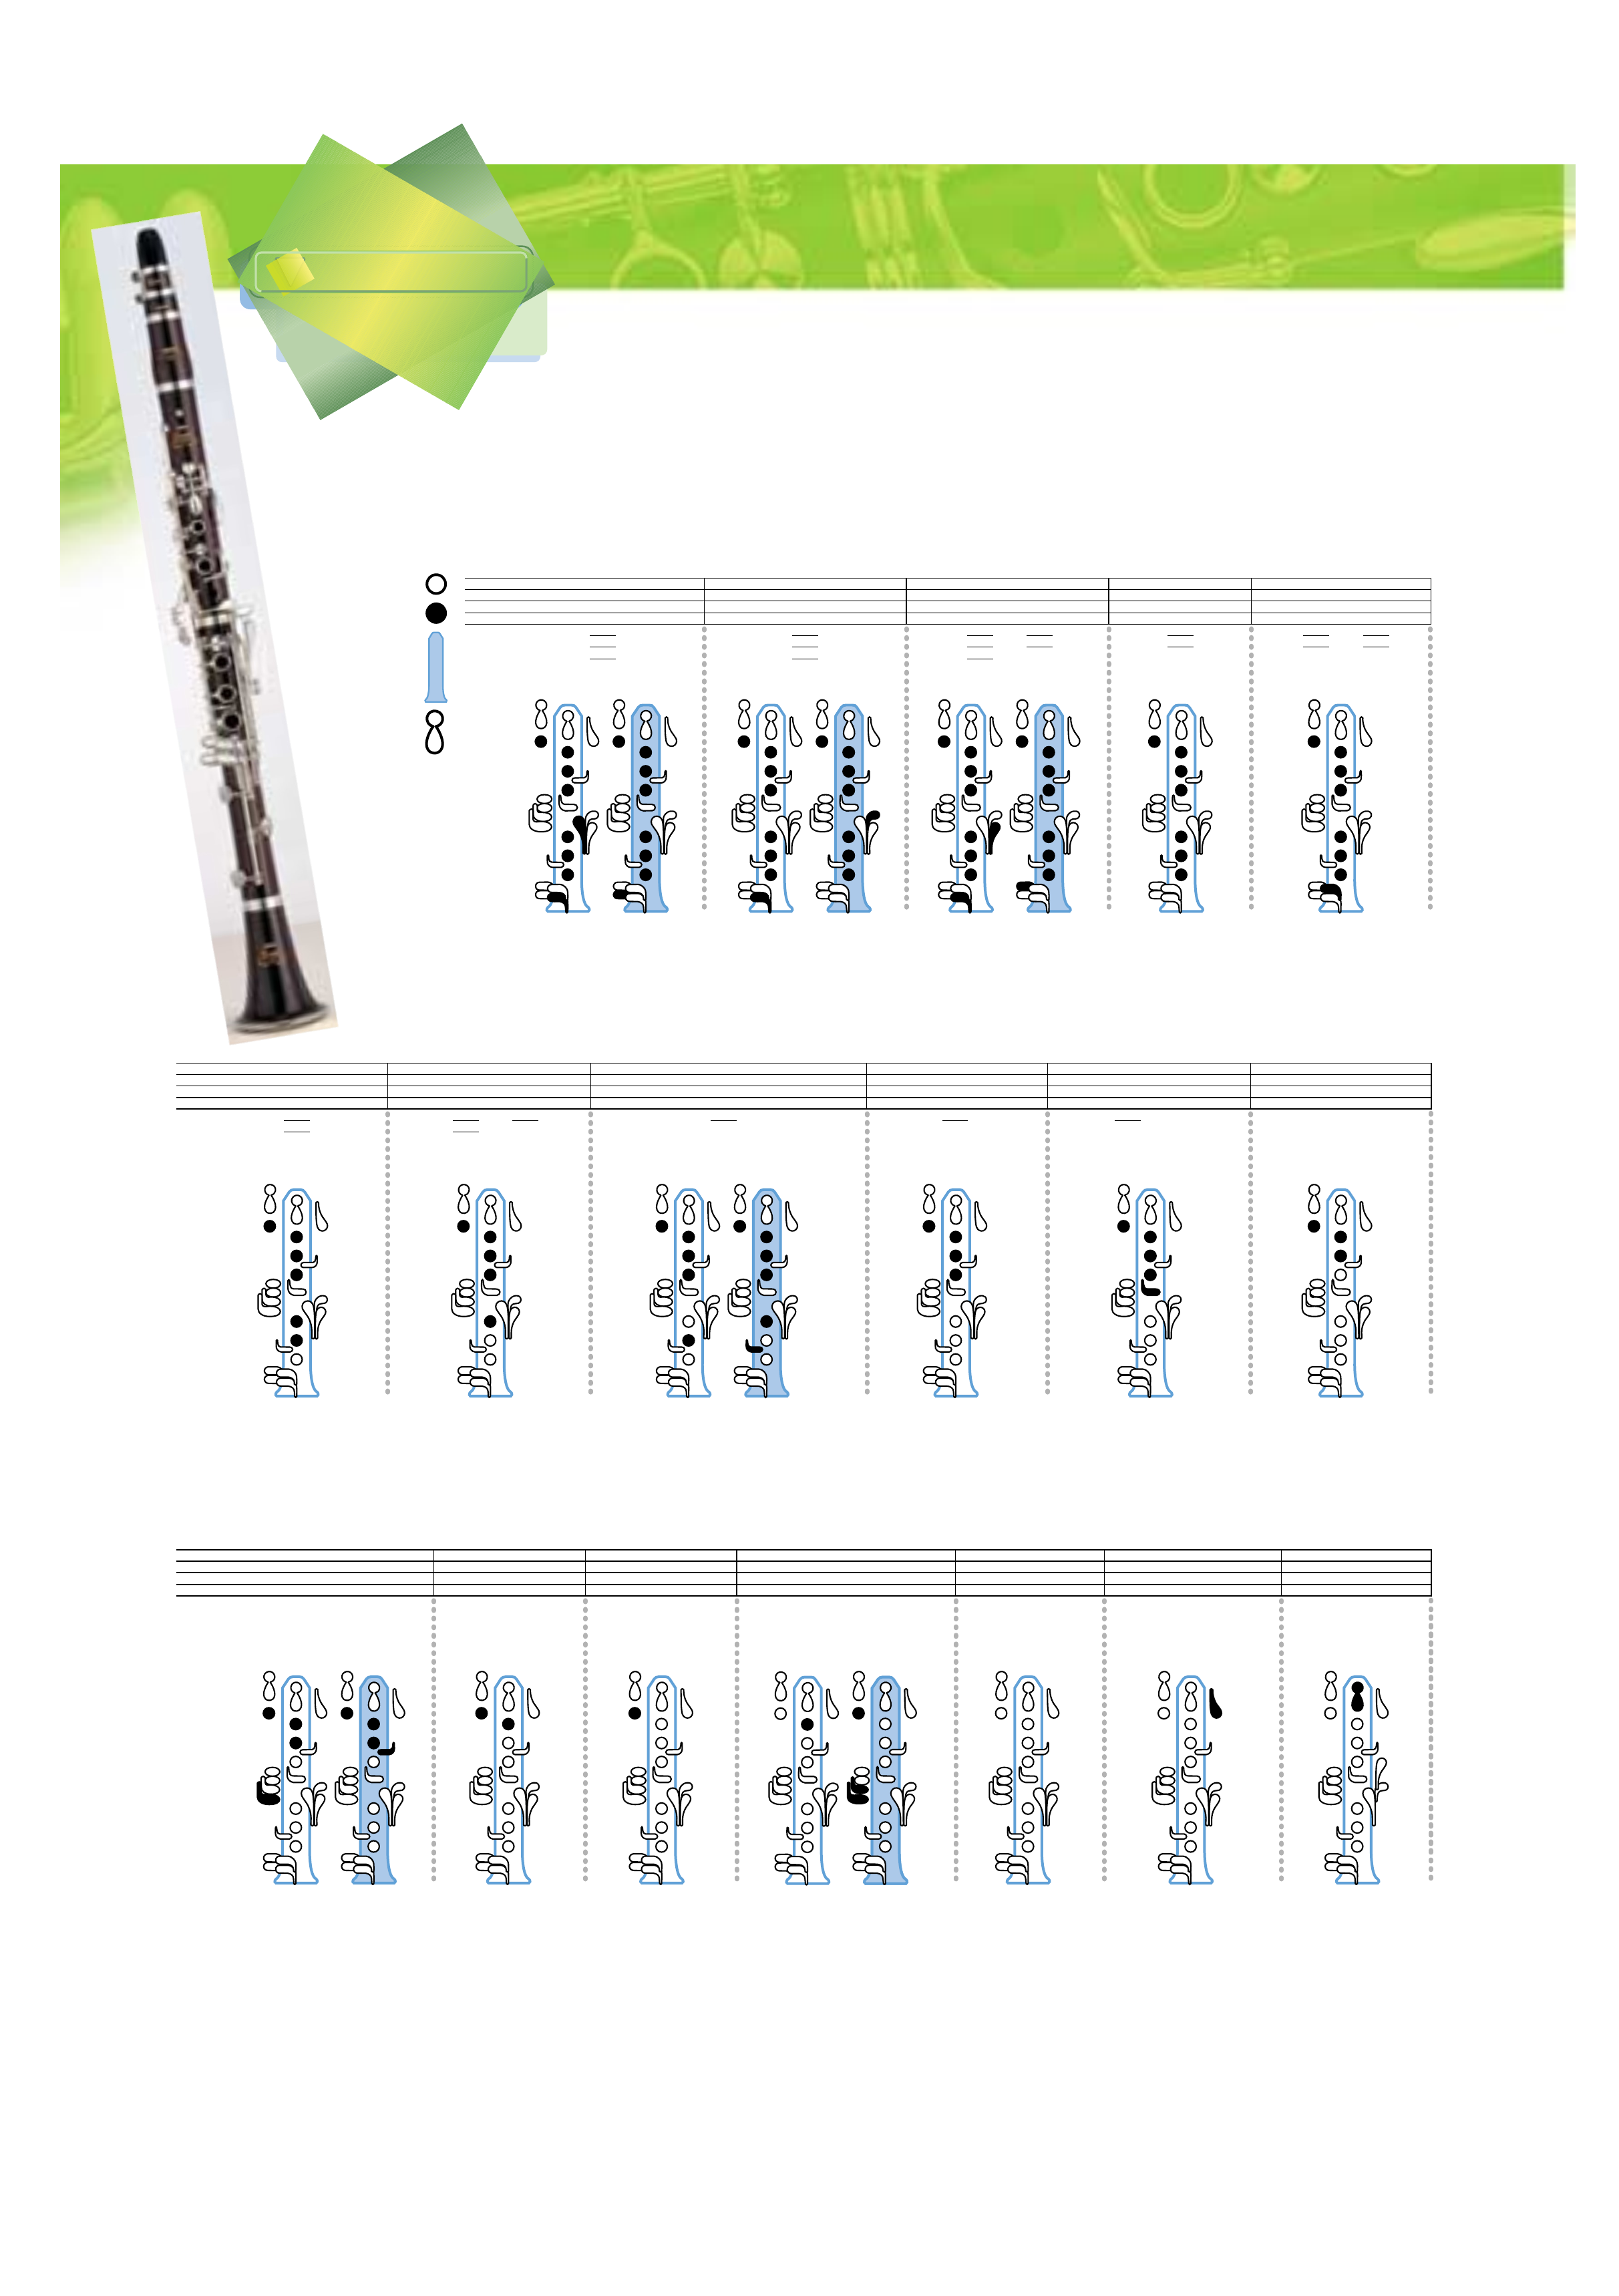 clarinet fingering chart sample free download